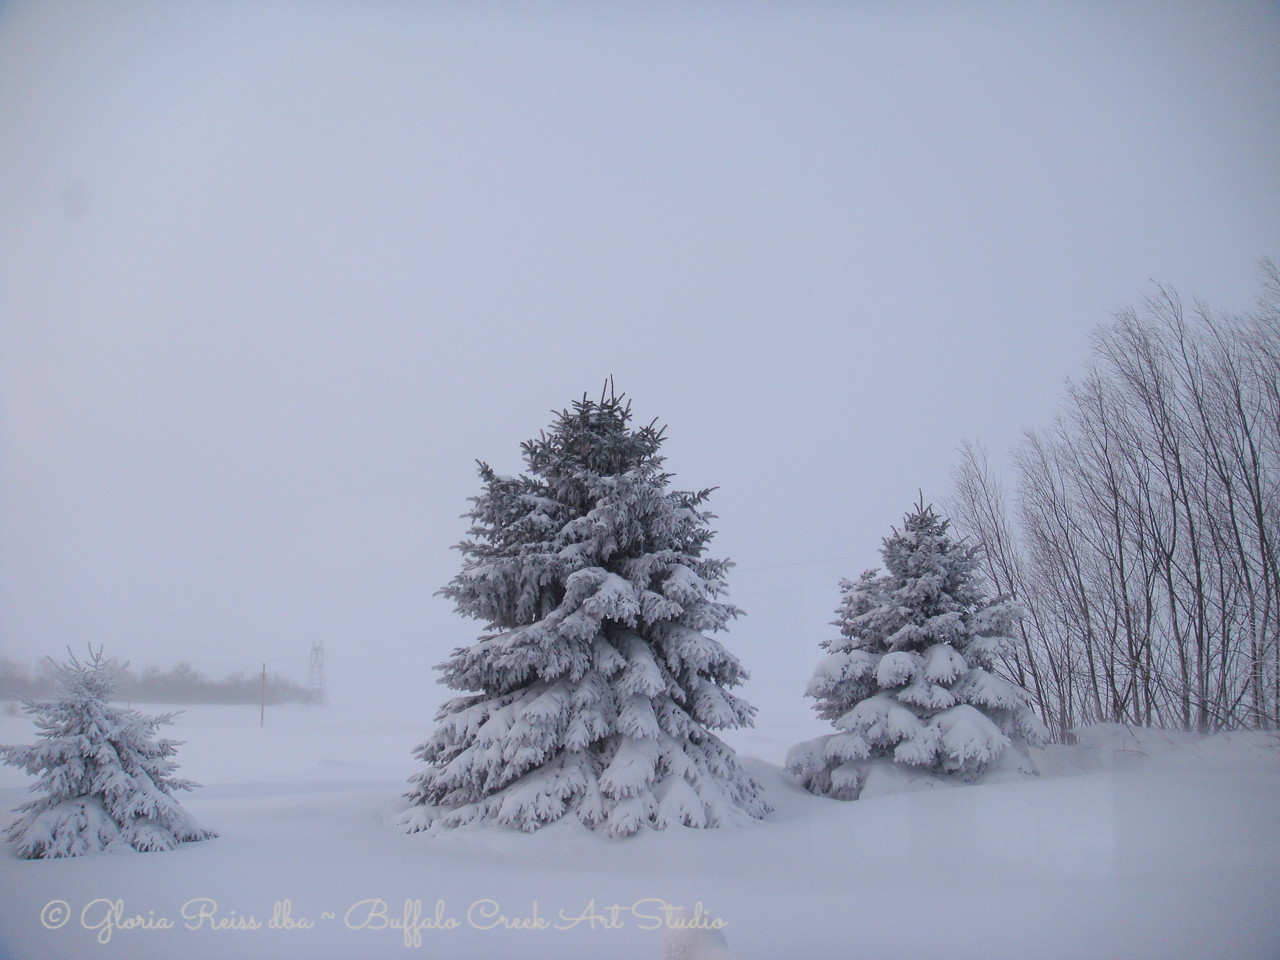 Snow swallowing all the trees and obscuring the view